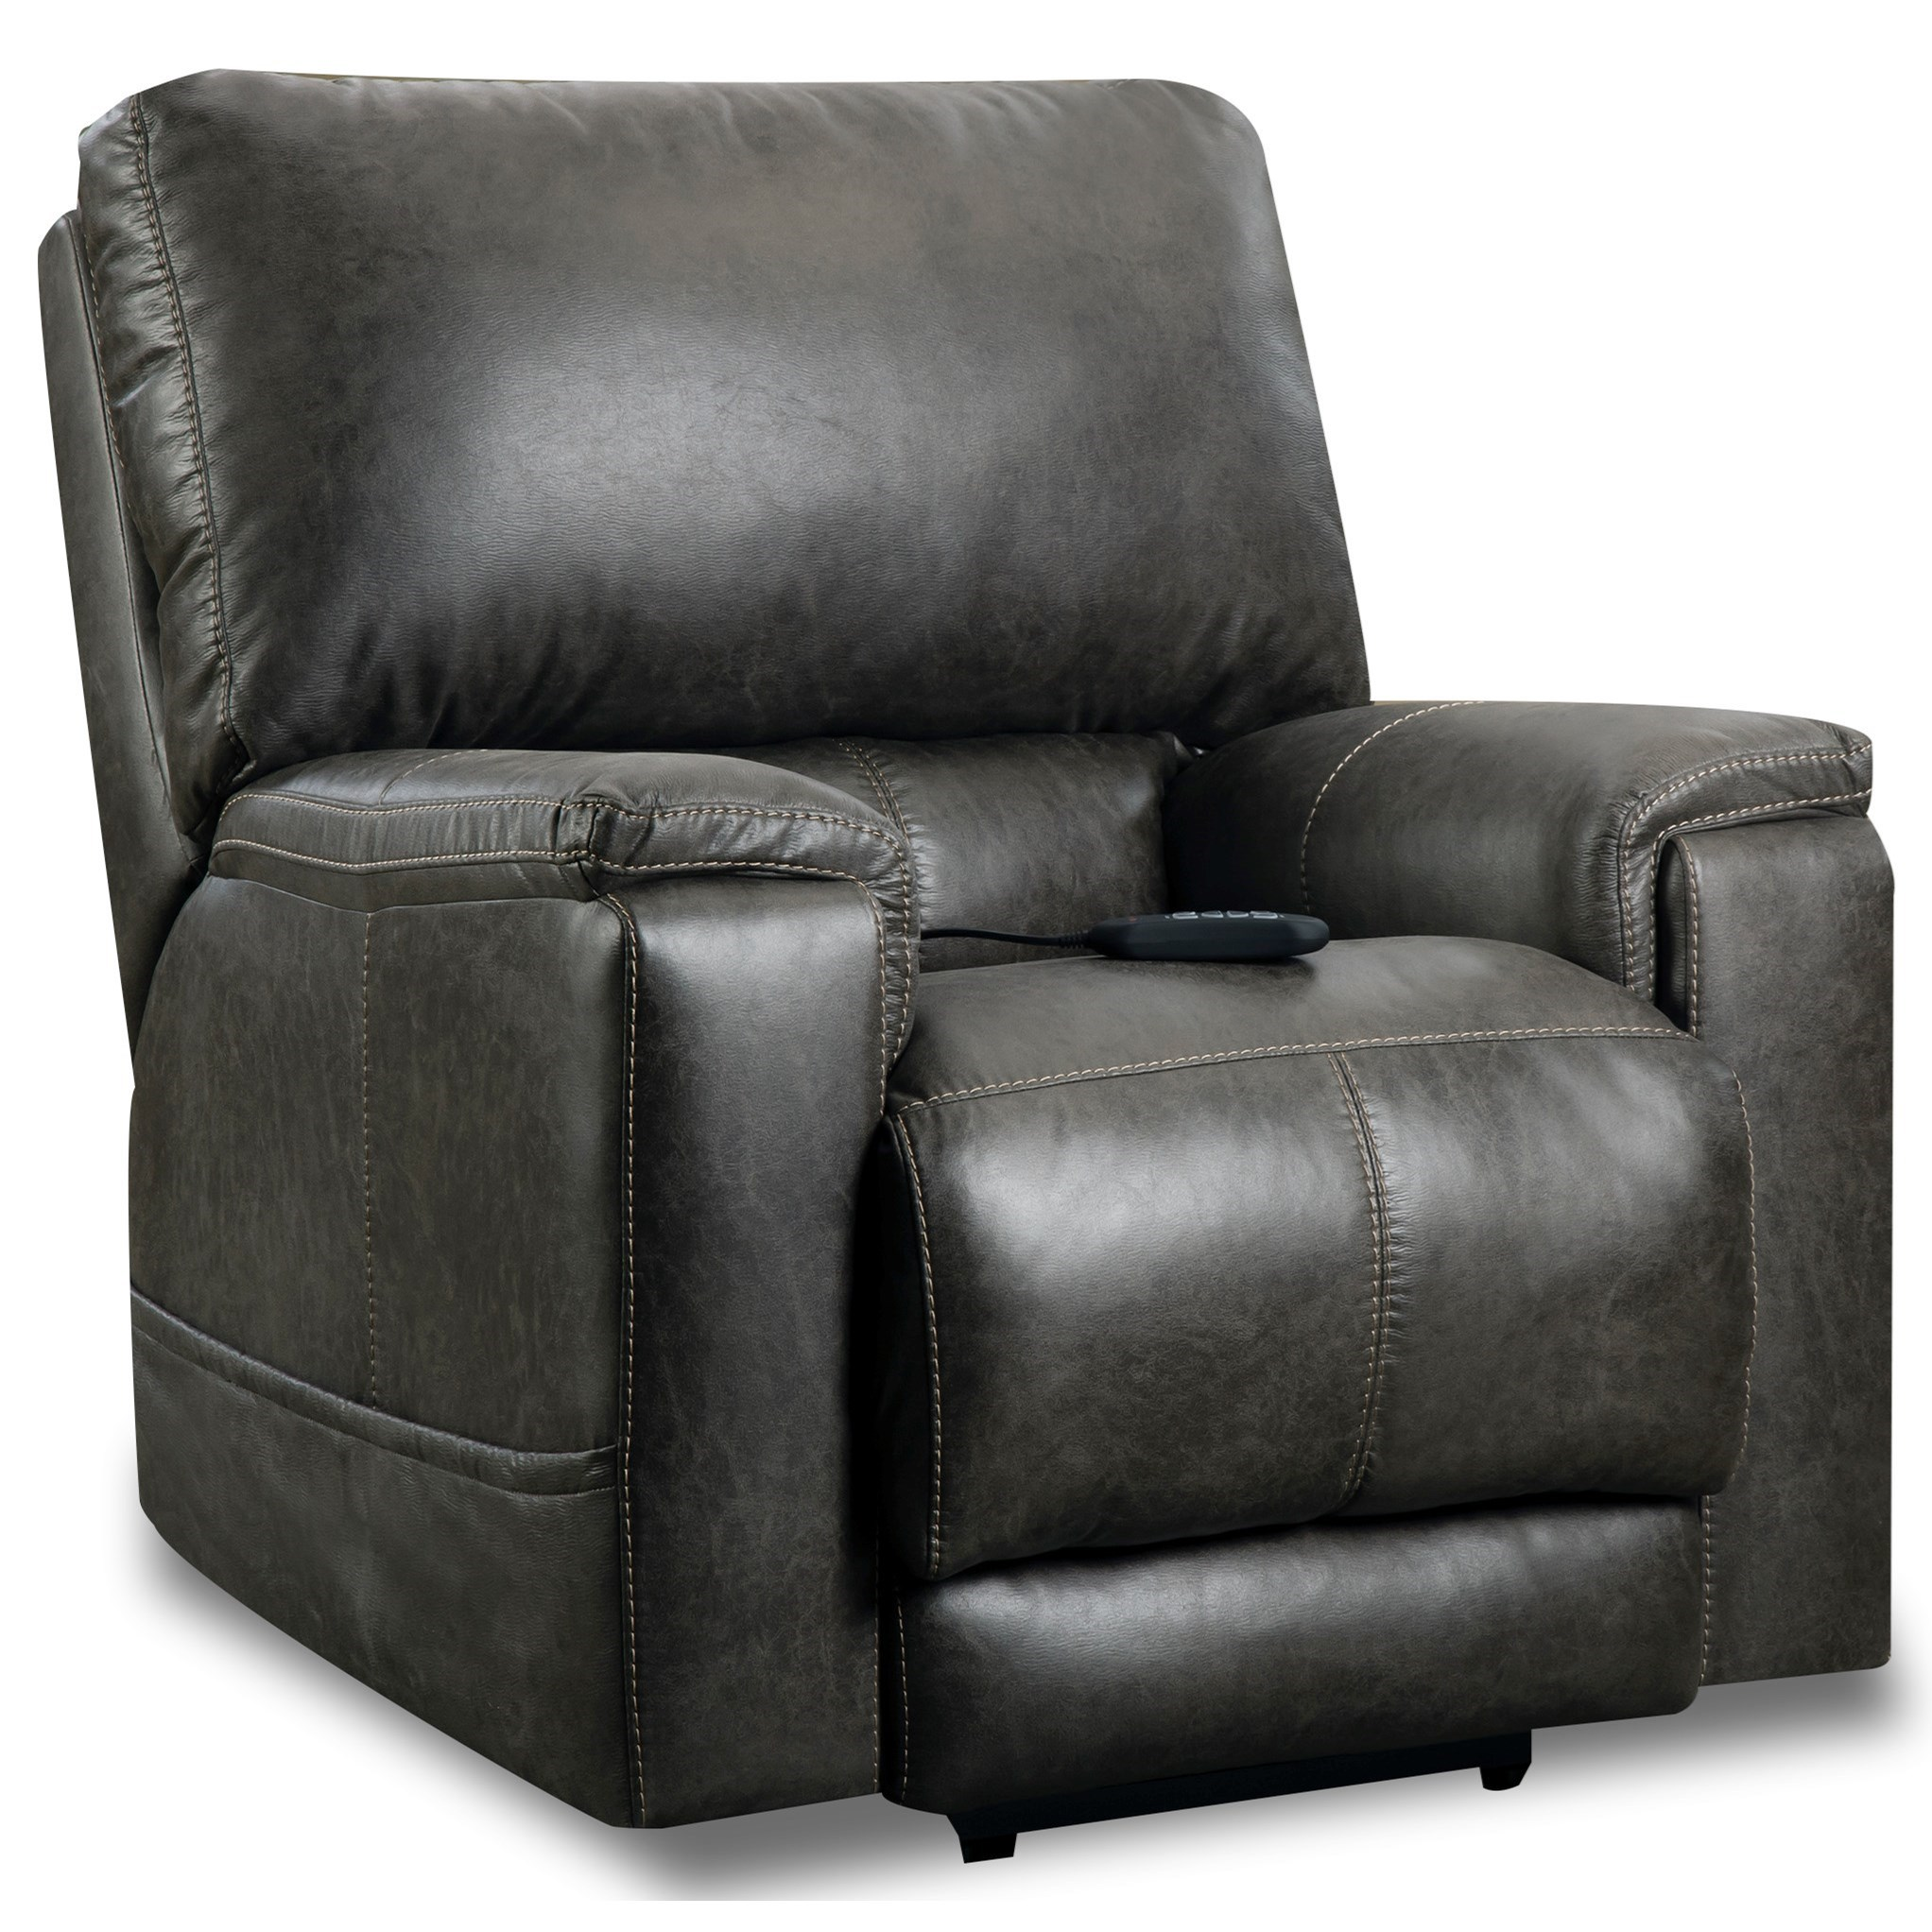 197 Collection Power Recliner  by HomeStretch at Story & Lee Furniture